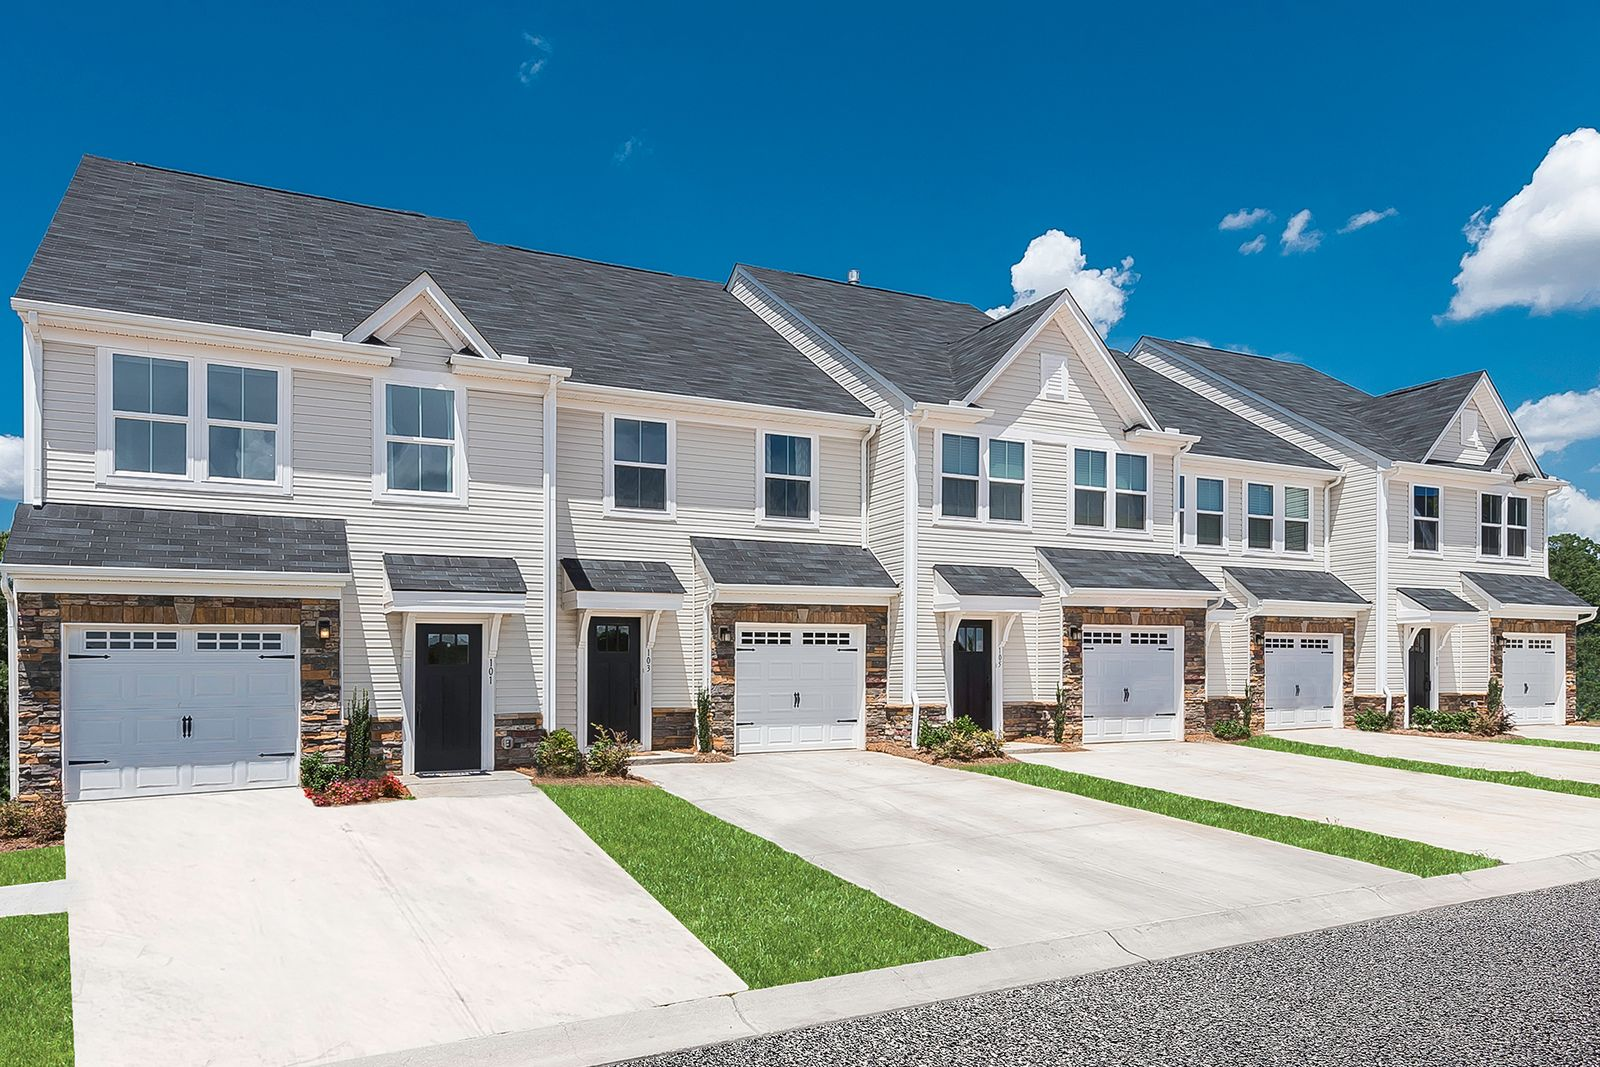 WELCOME TO ABERDEEN PLACE:Lowest priced new townhomes with 2 beds and a loft in a convenient Aberdeen location 2 miles from the GSP and 13 miles from MetroPark. Click here toschedule your appointment.Photograph (1)